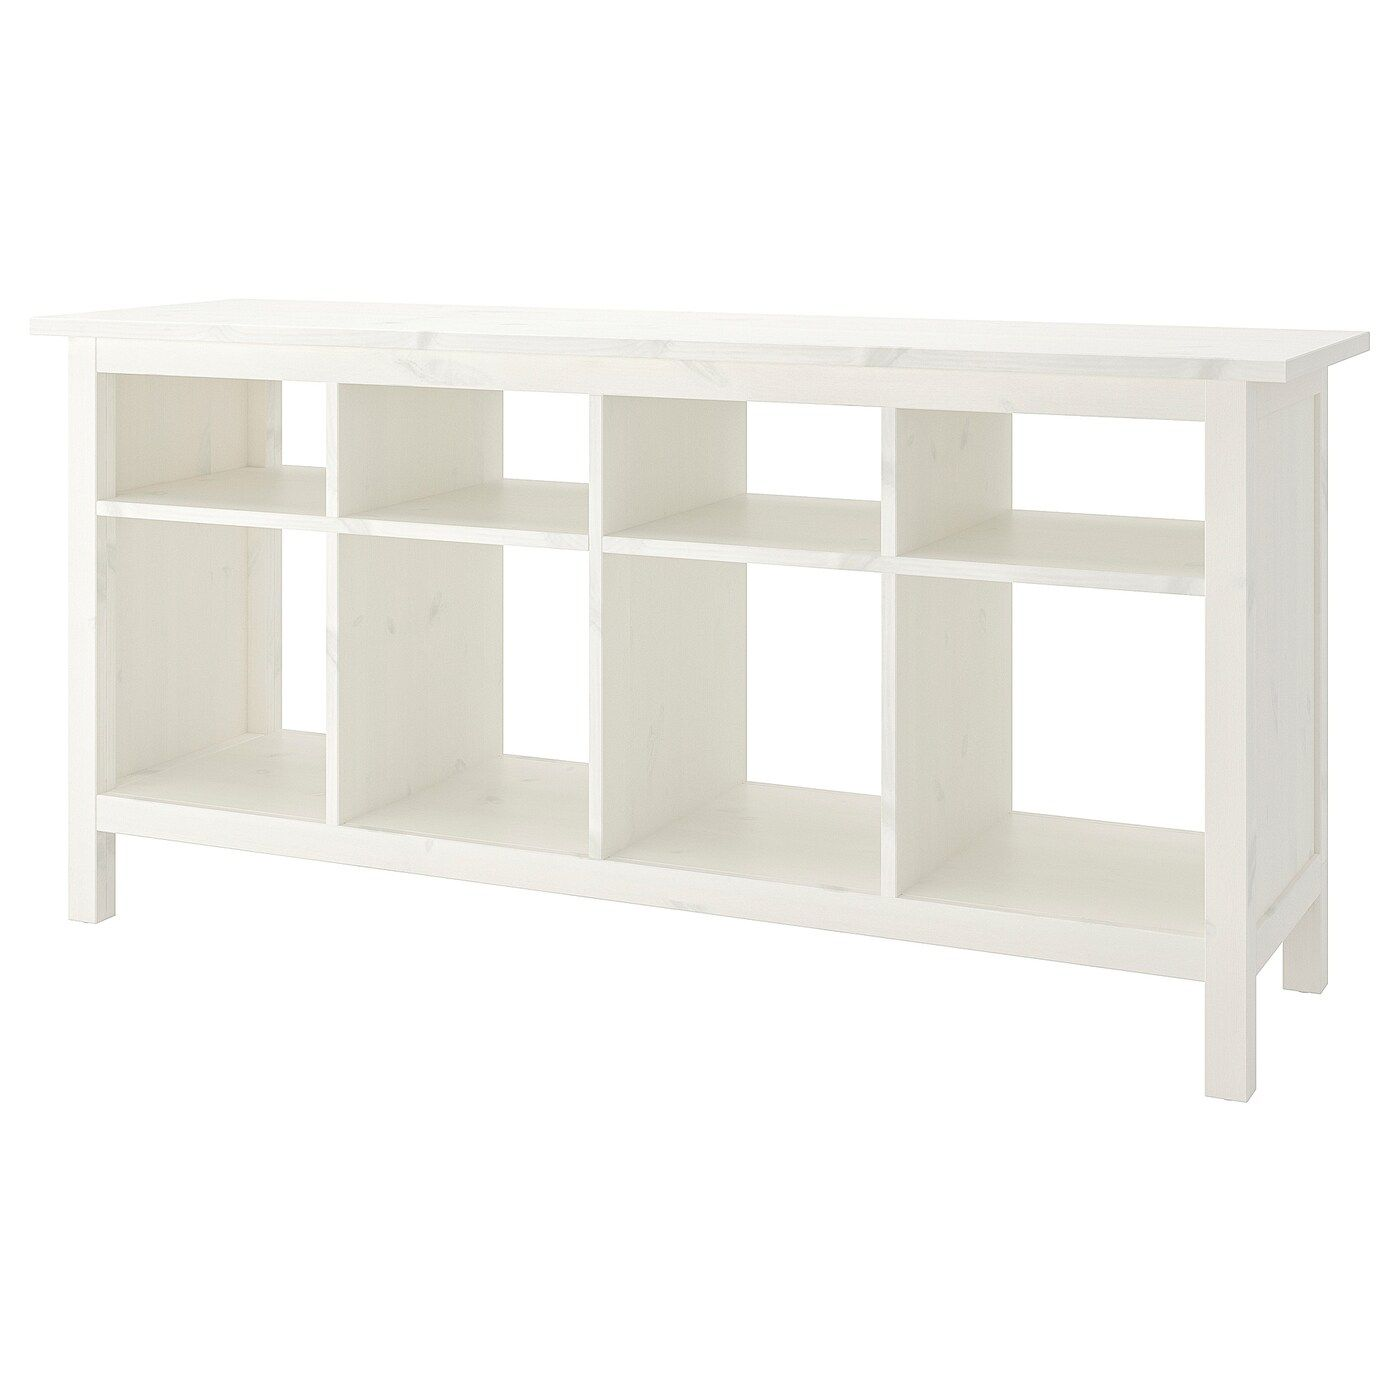 Ikea Hemnes White Stain Console Table Hemnes Console Table Ikea